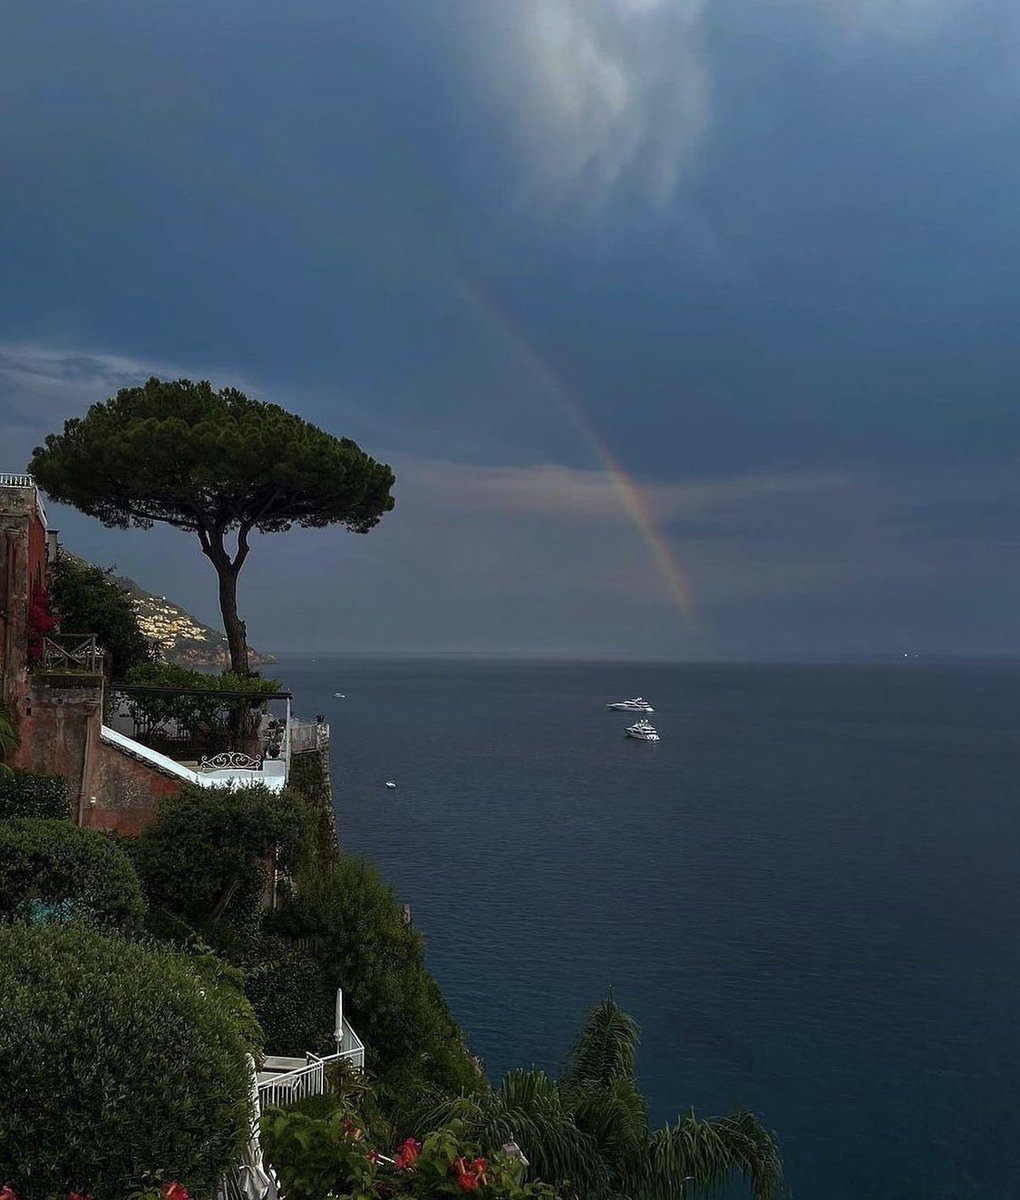 Morning view from Positano In Italy 🇮🇹